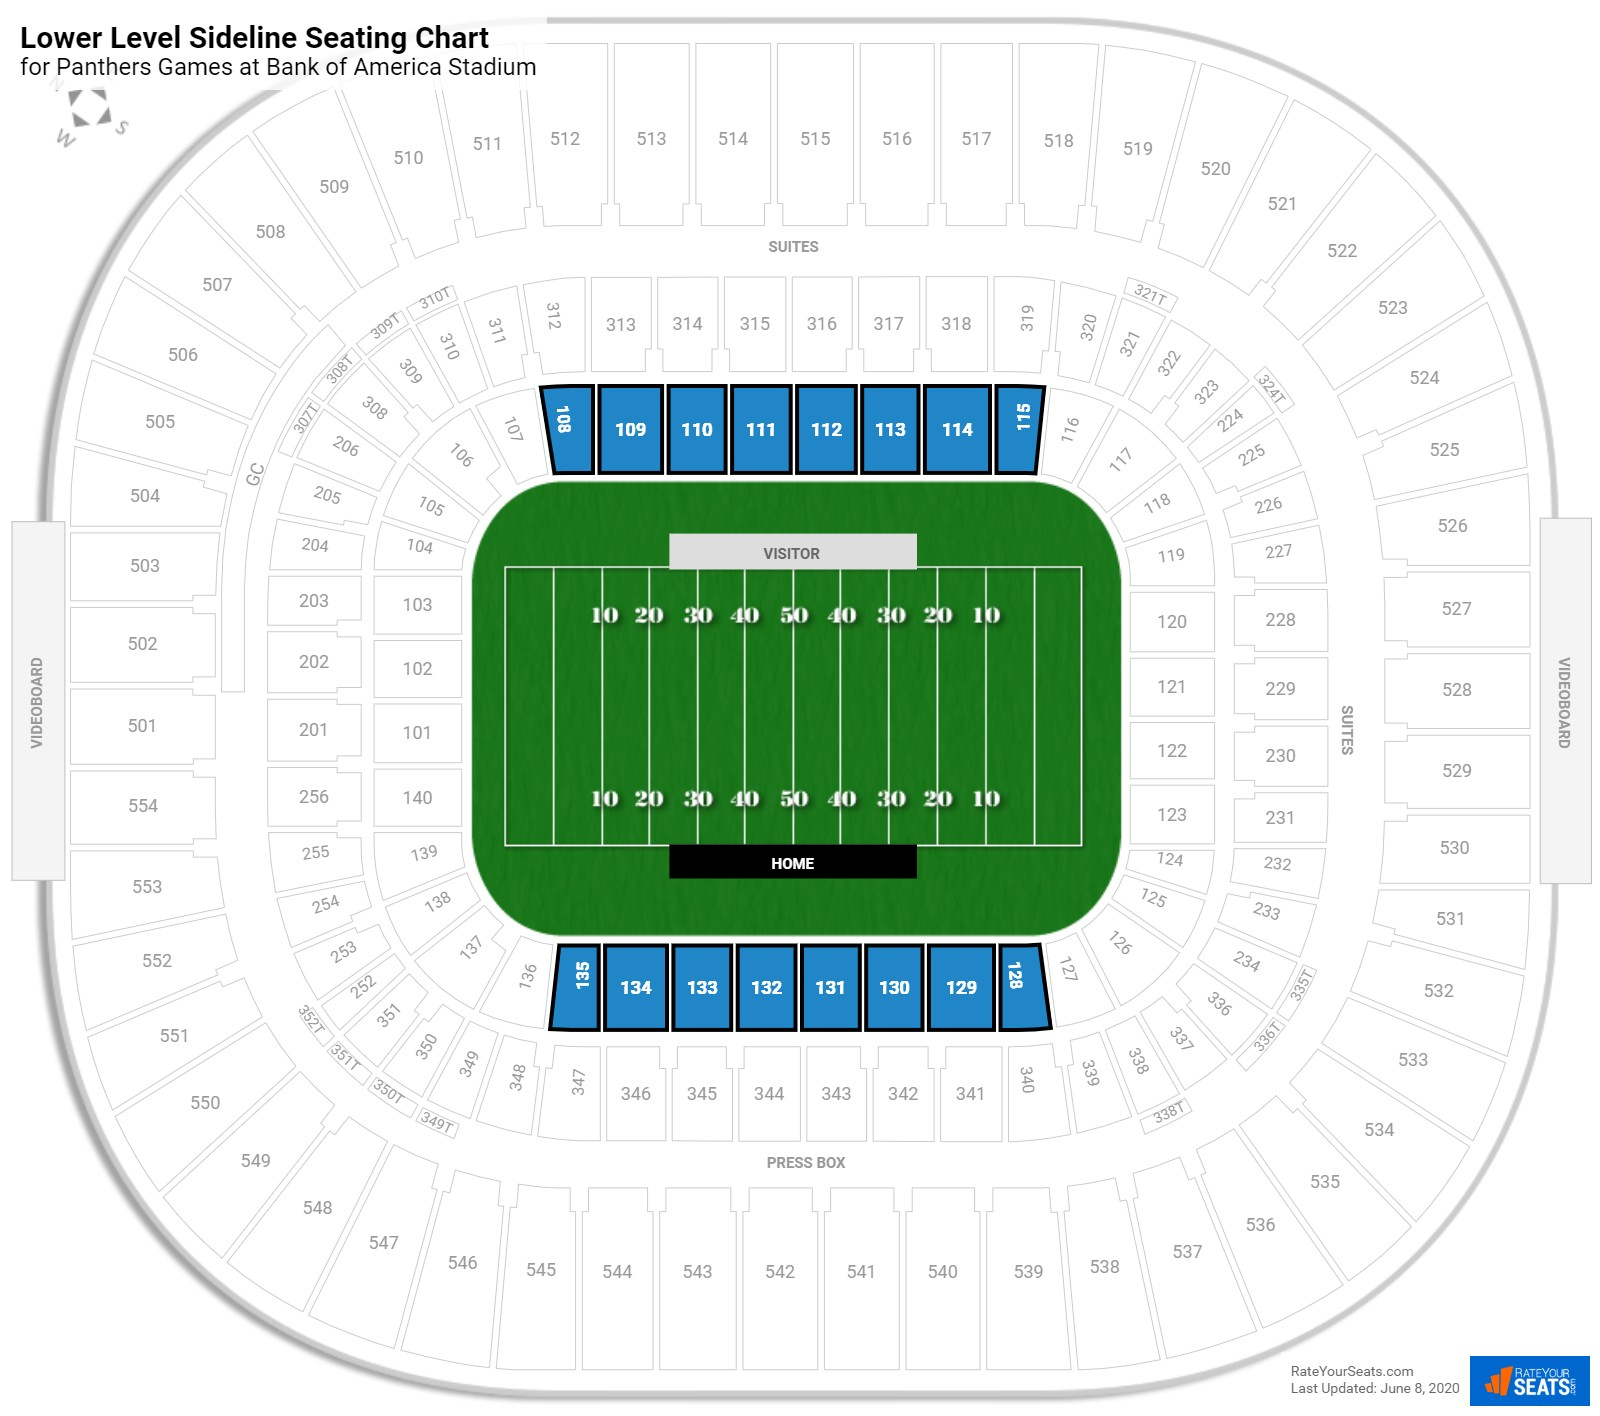 Bank of America Stadium Lower Level Sideline seating chart